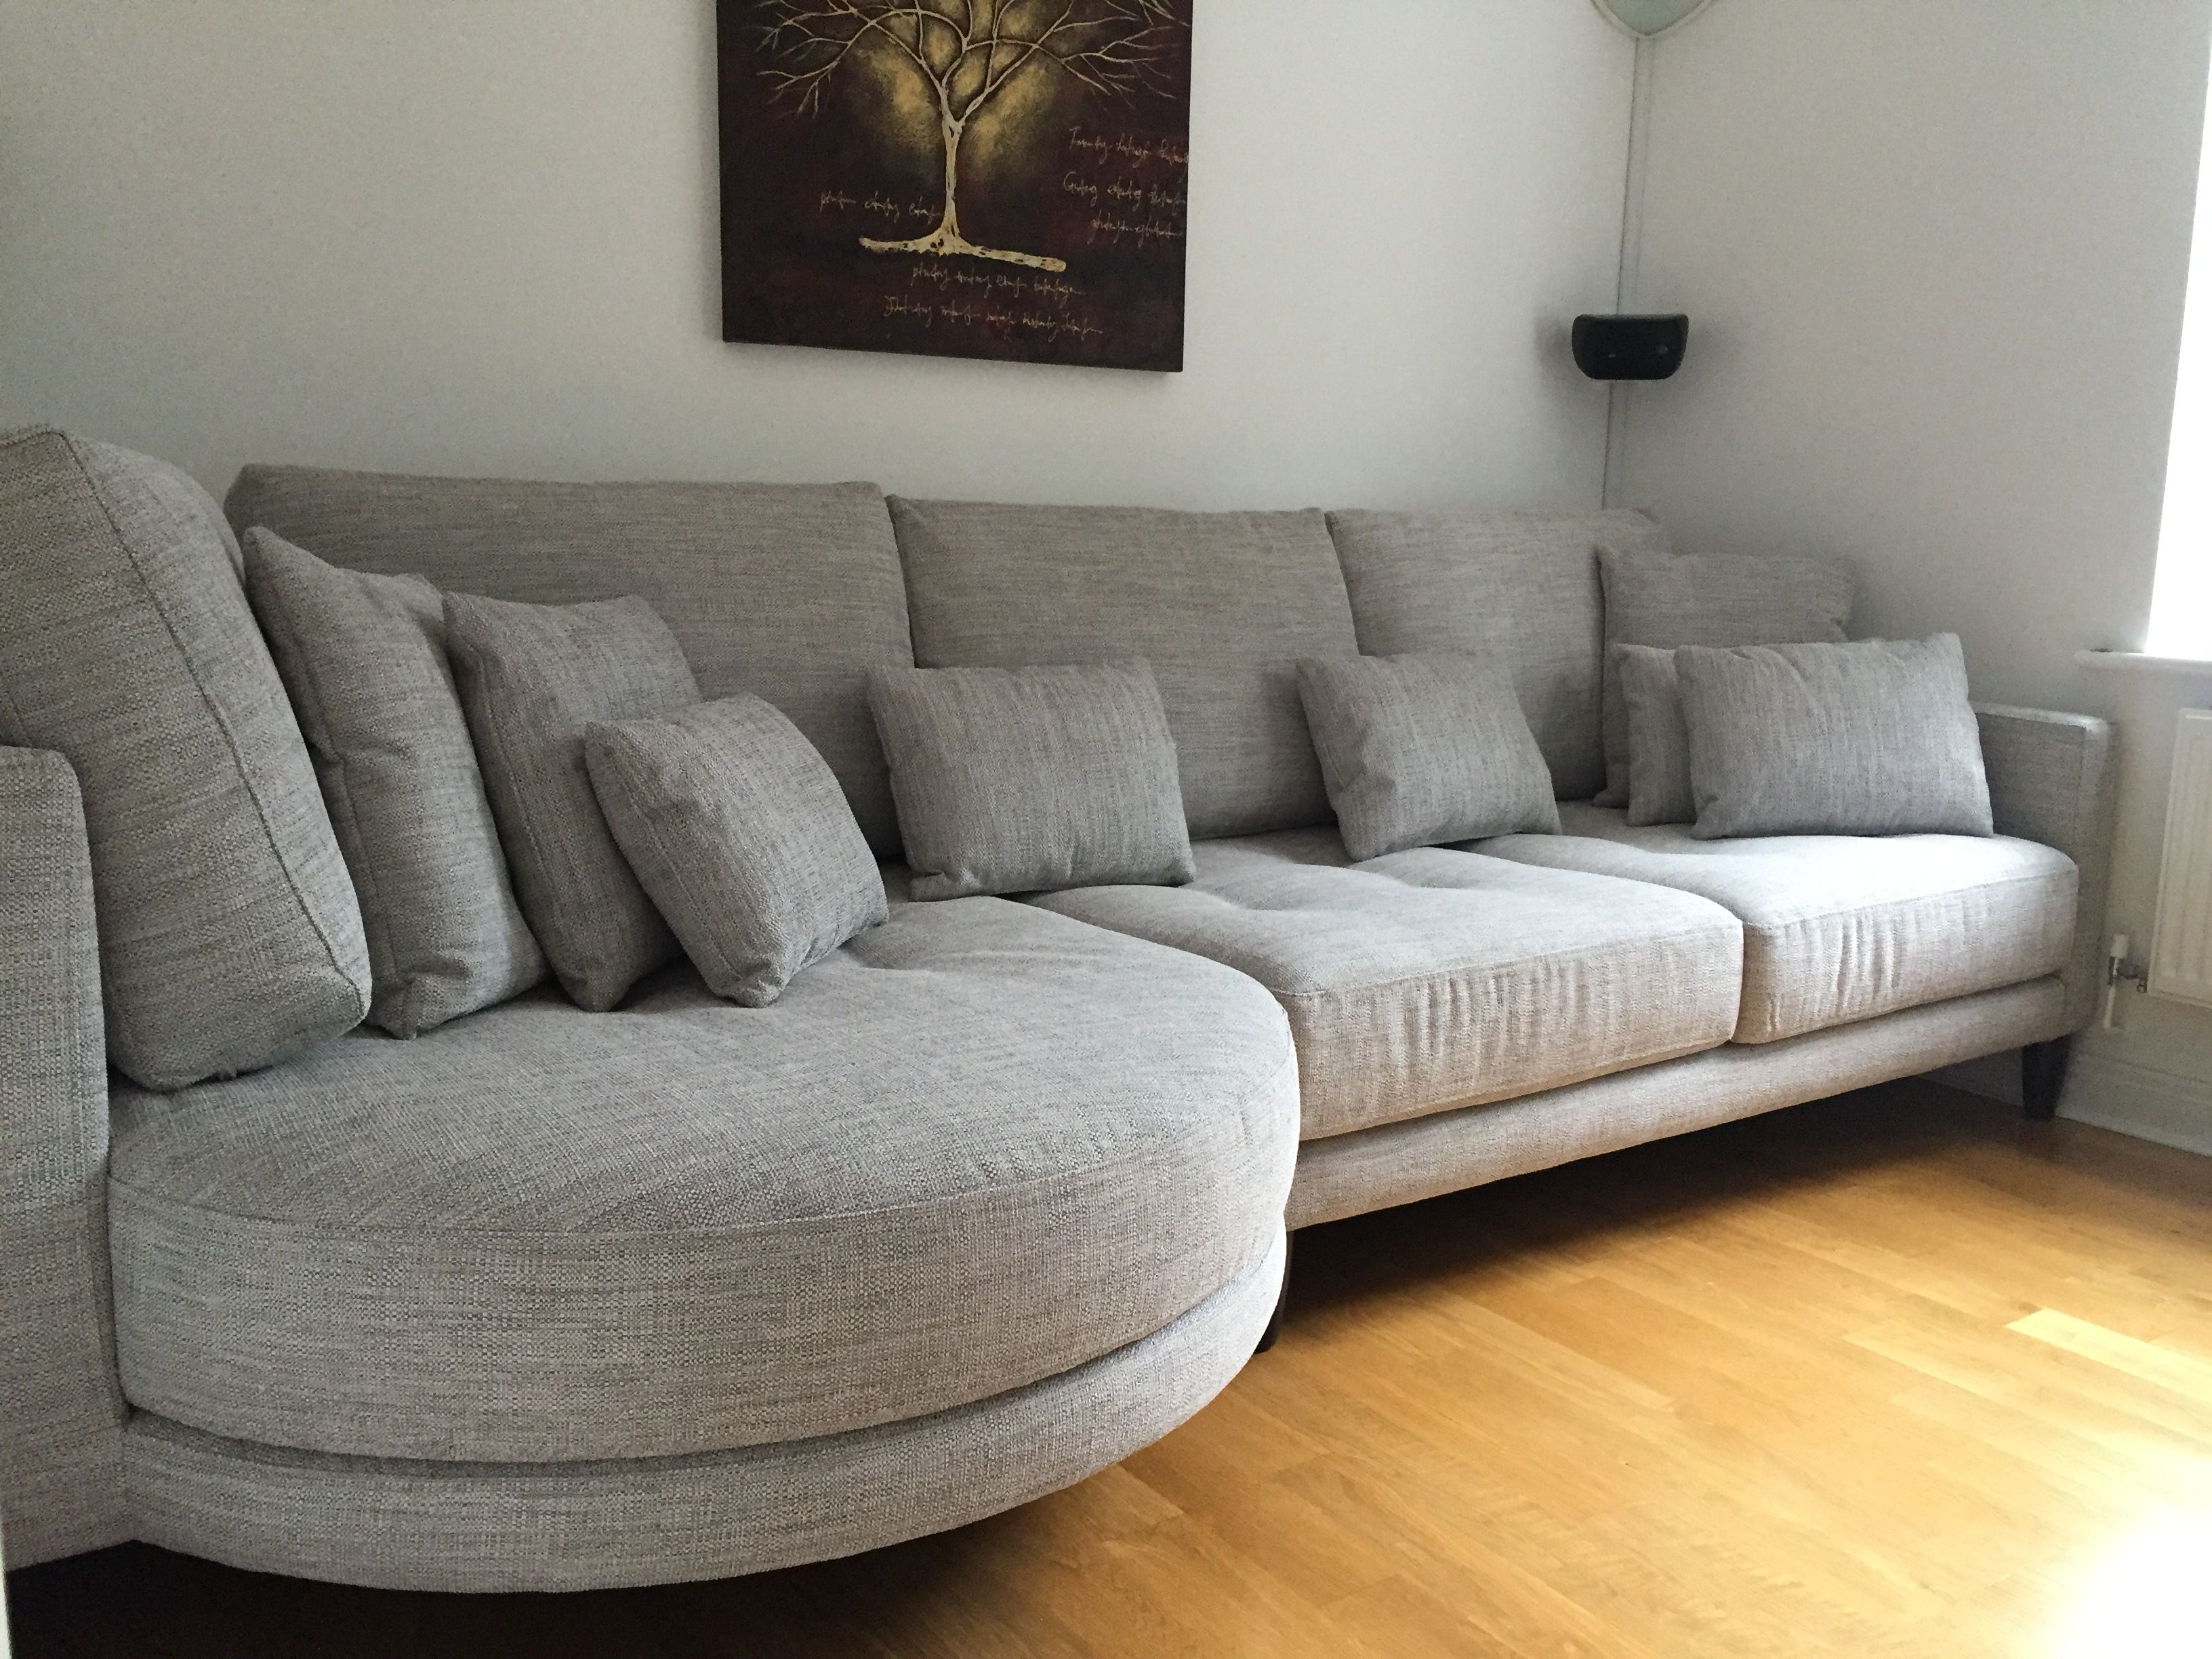 Ole Rounded Chaise And Sofa Section In Soft Grey Fabric Dark Wood Legs With Images Sofa Inspiration Sofa Grey Sectional Couch